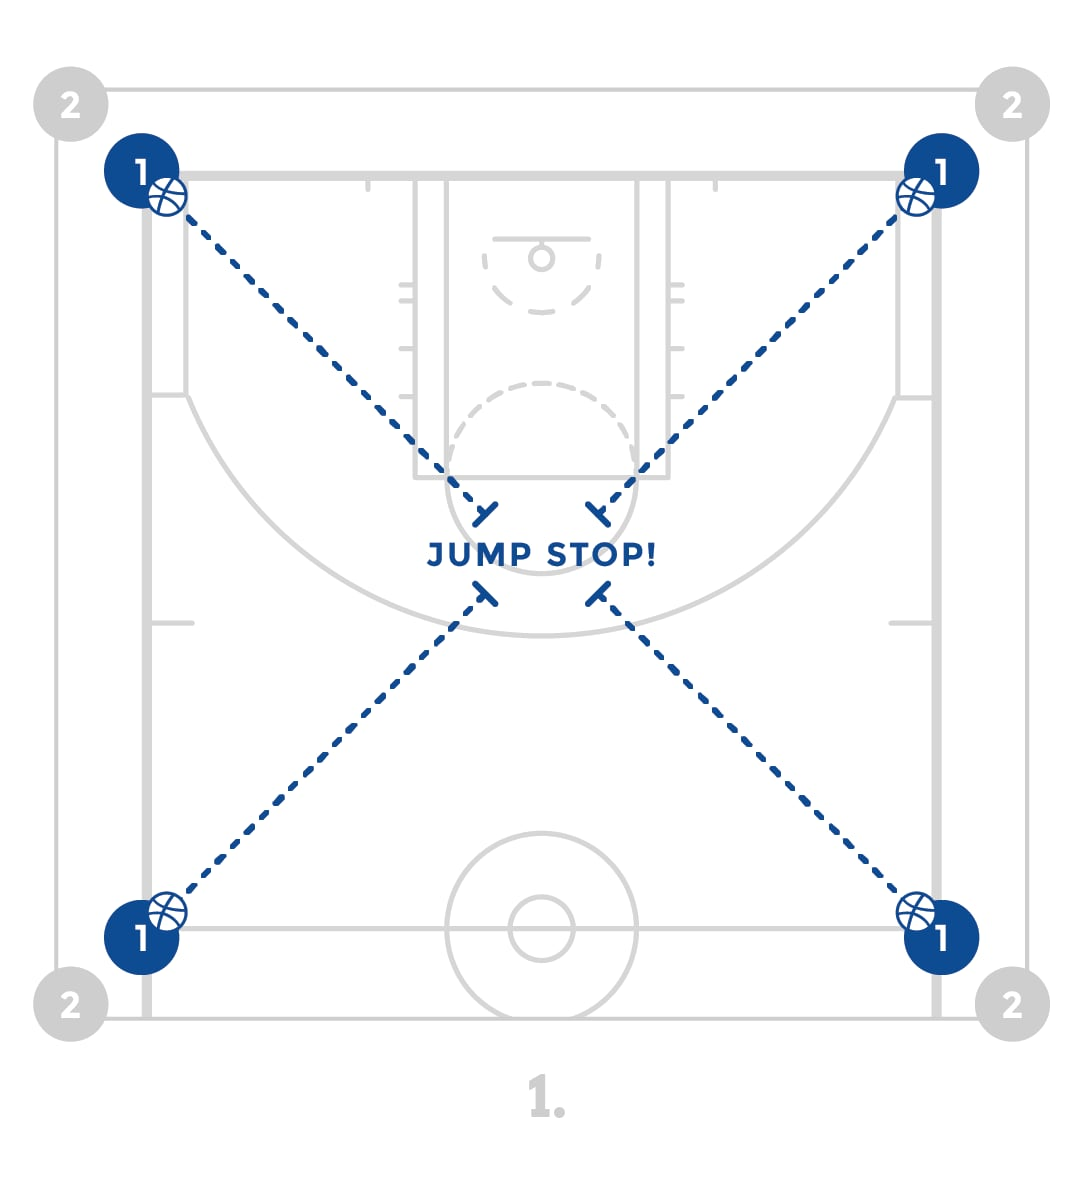 jrnba_starter_pp9_4cornerpassingdrill_diagram1of2